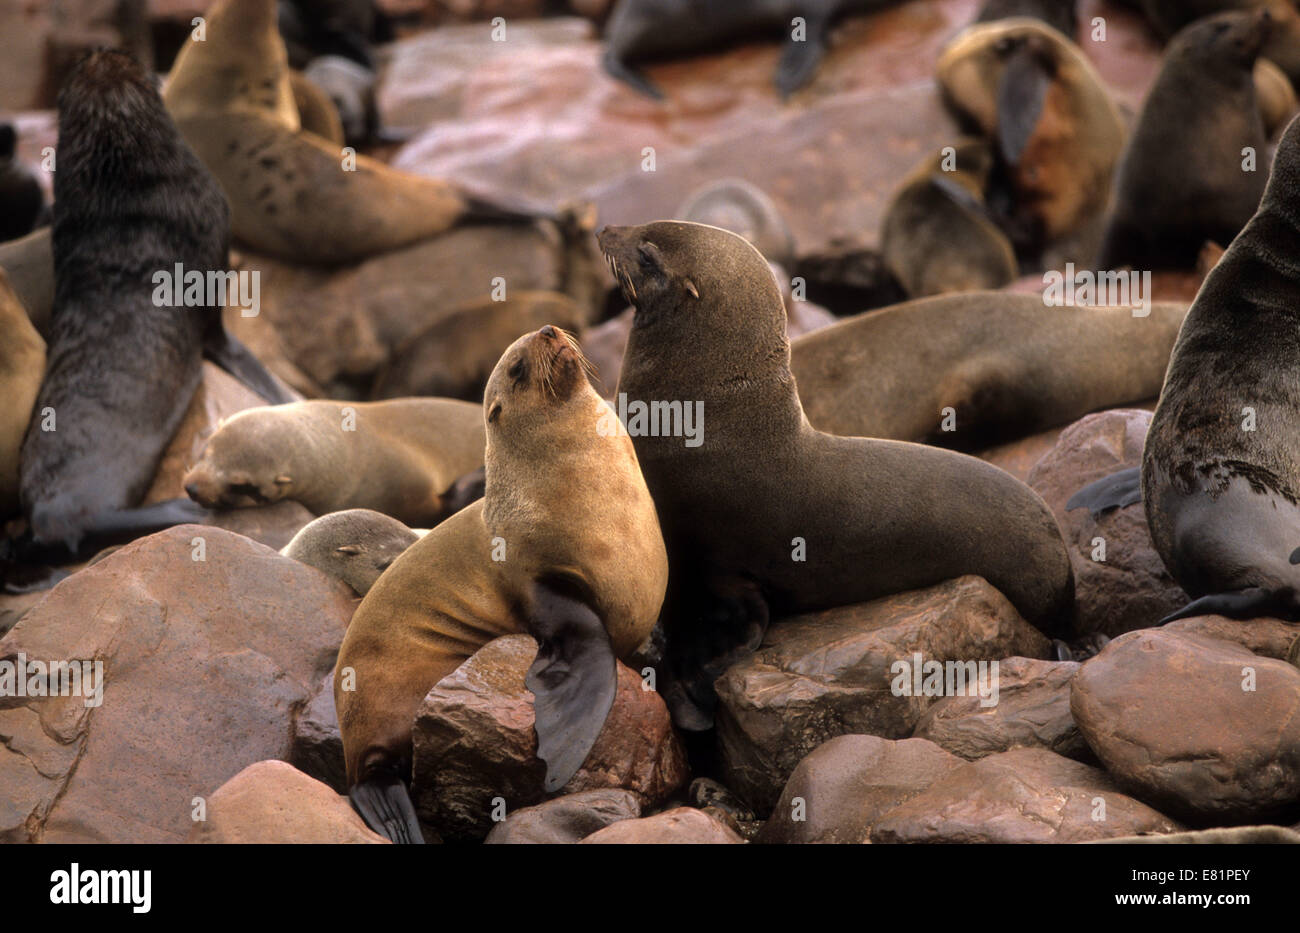 Cape fur seal (Arctocephalus pusillus). The female (cow) is smaller and lighter coloured than the male (bull). The - Stock Image